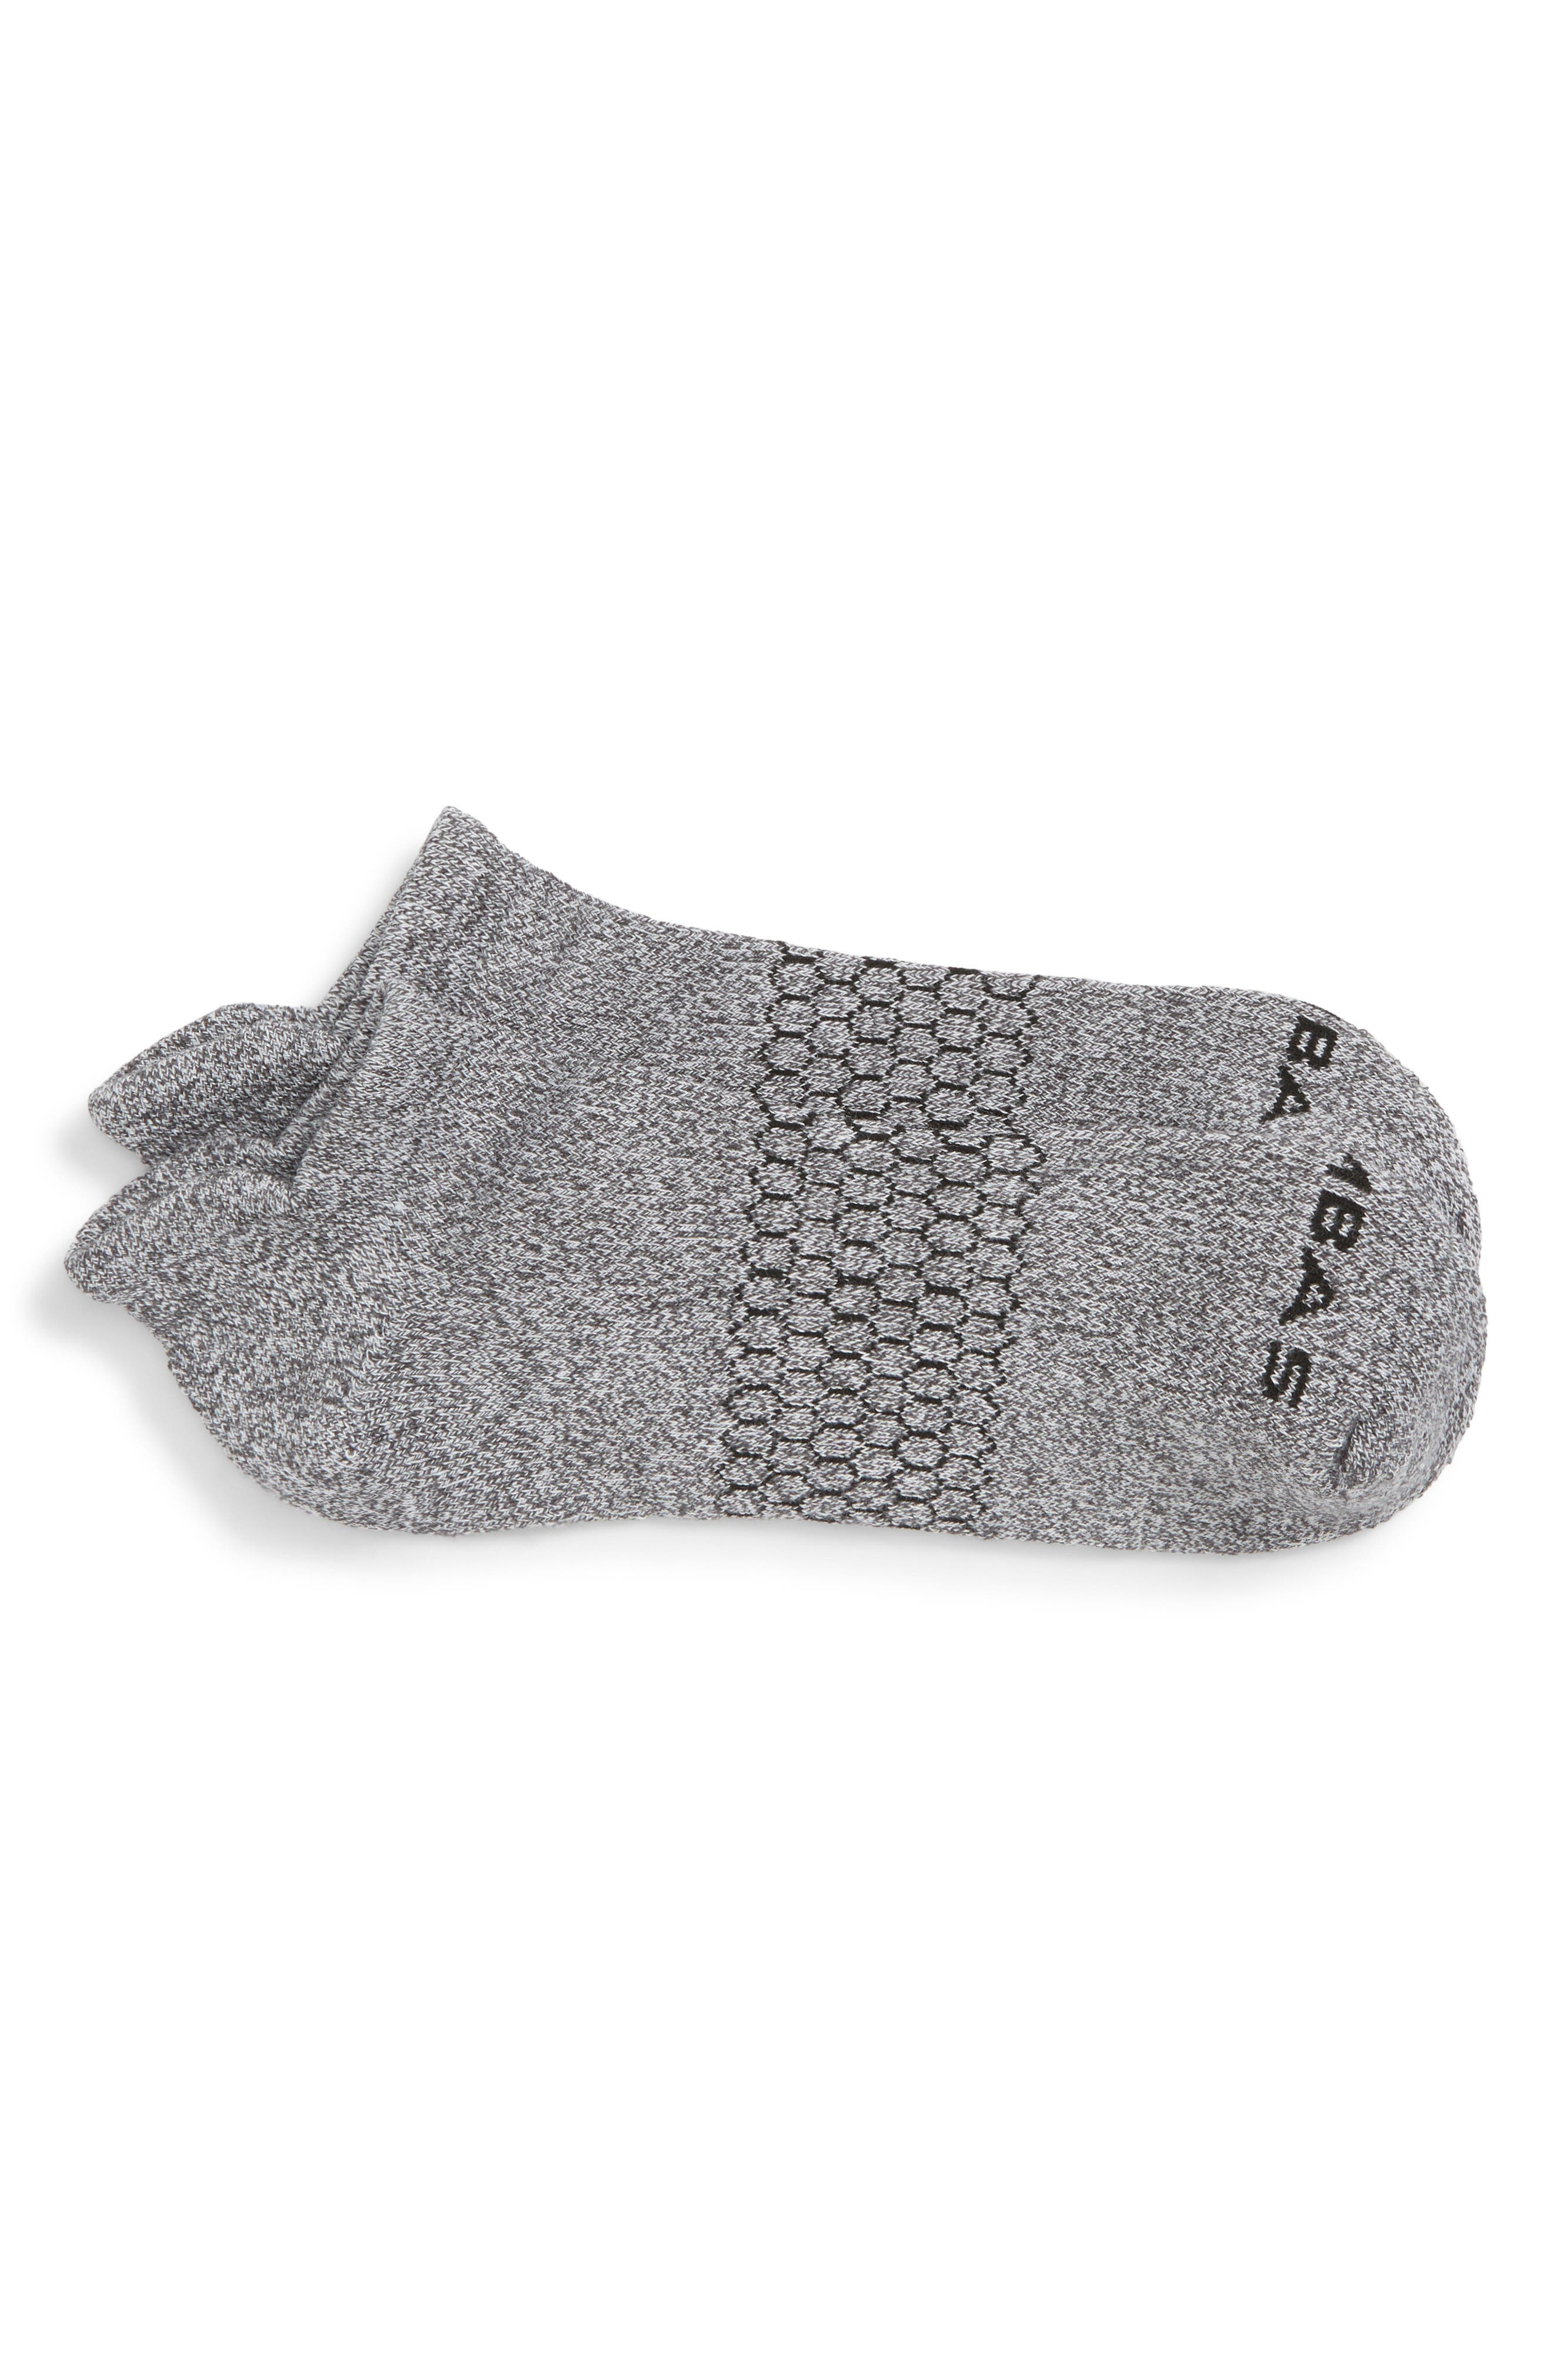 Marl Ankle Socks,                         Main,                         color, Marled Light Charcoal